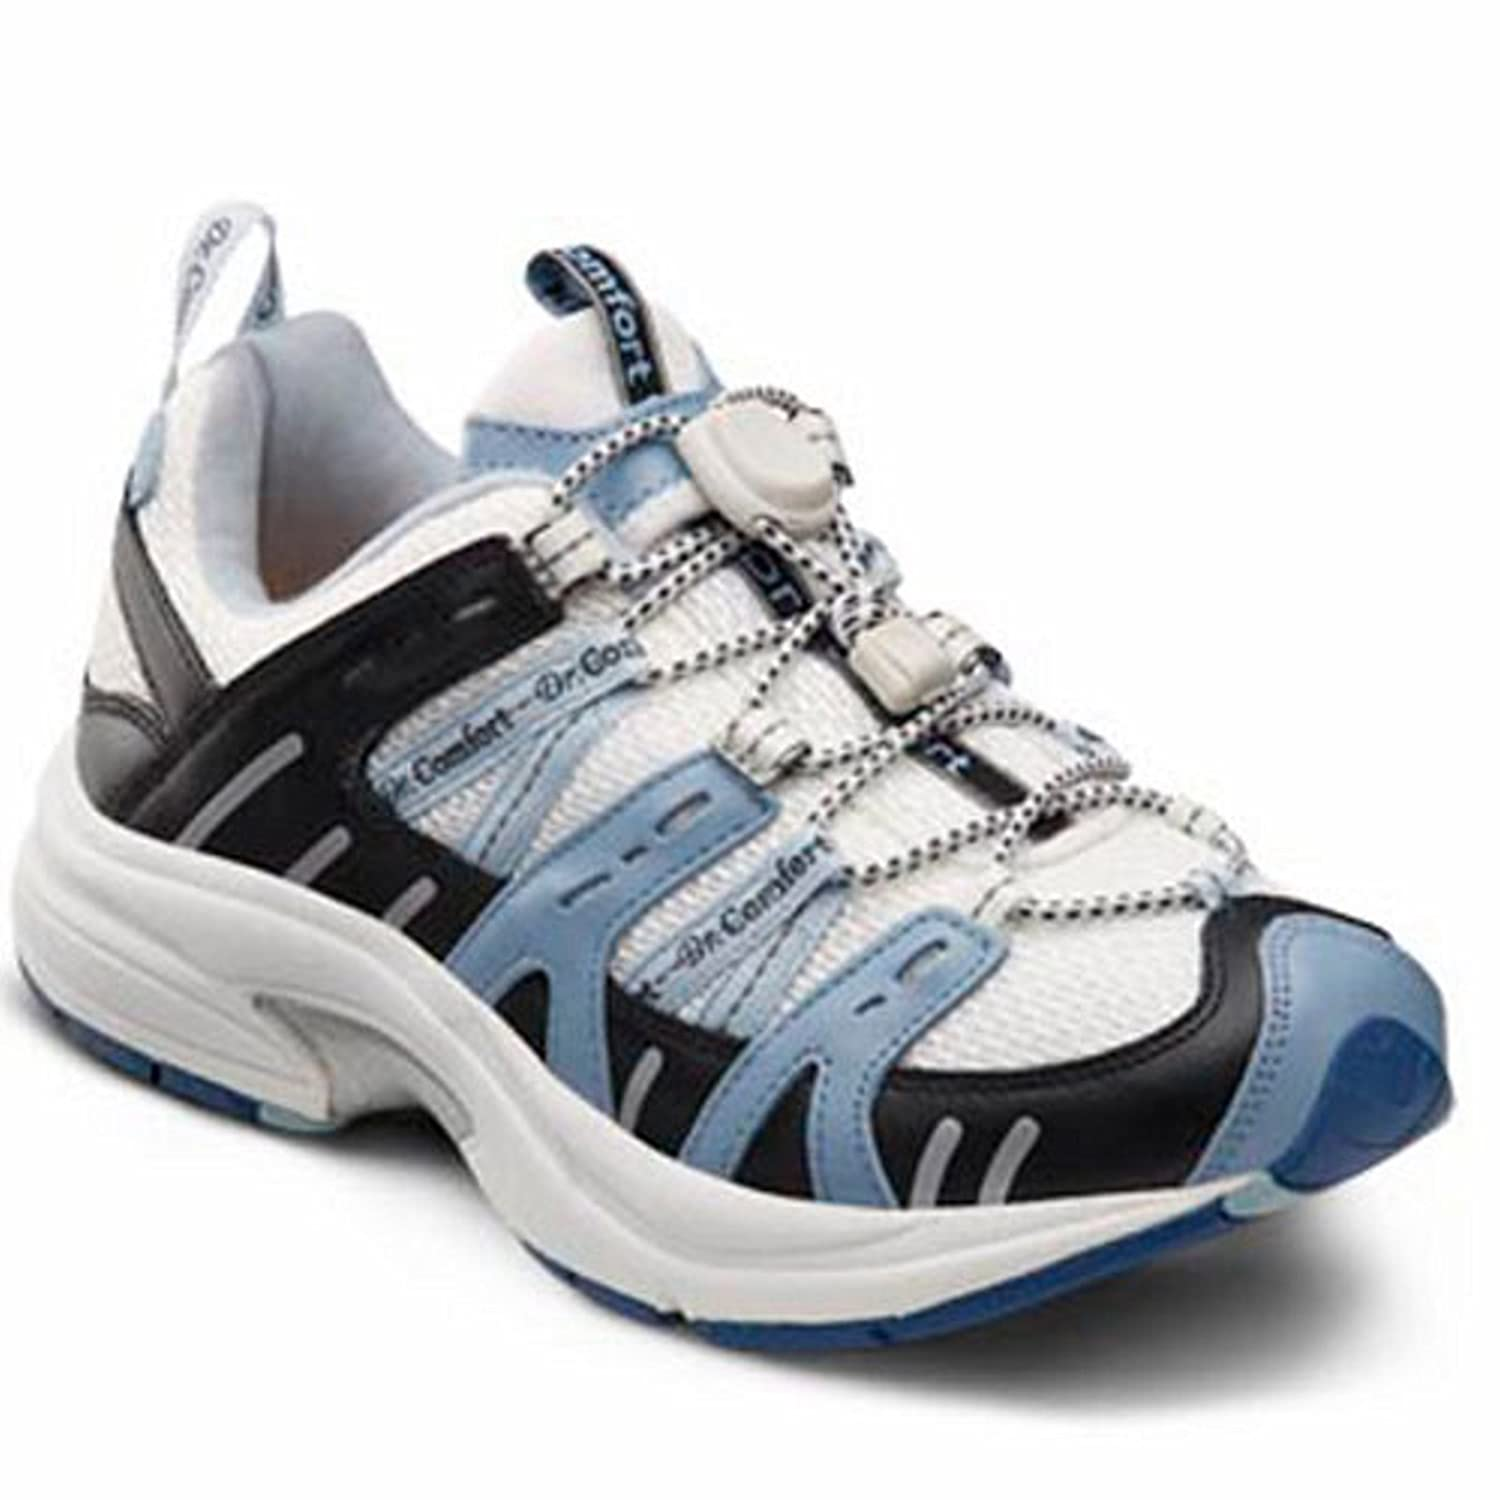 Dr. Comfort Women's Refresh X Blue Diabetic Athletic Shoes B00IO6GO2U 11.0 Medium (M/D) White/Blue Lace US Woman|White and Blue